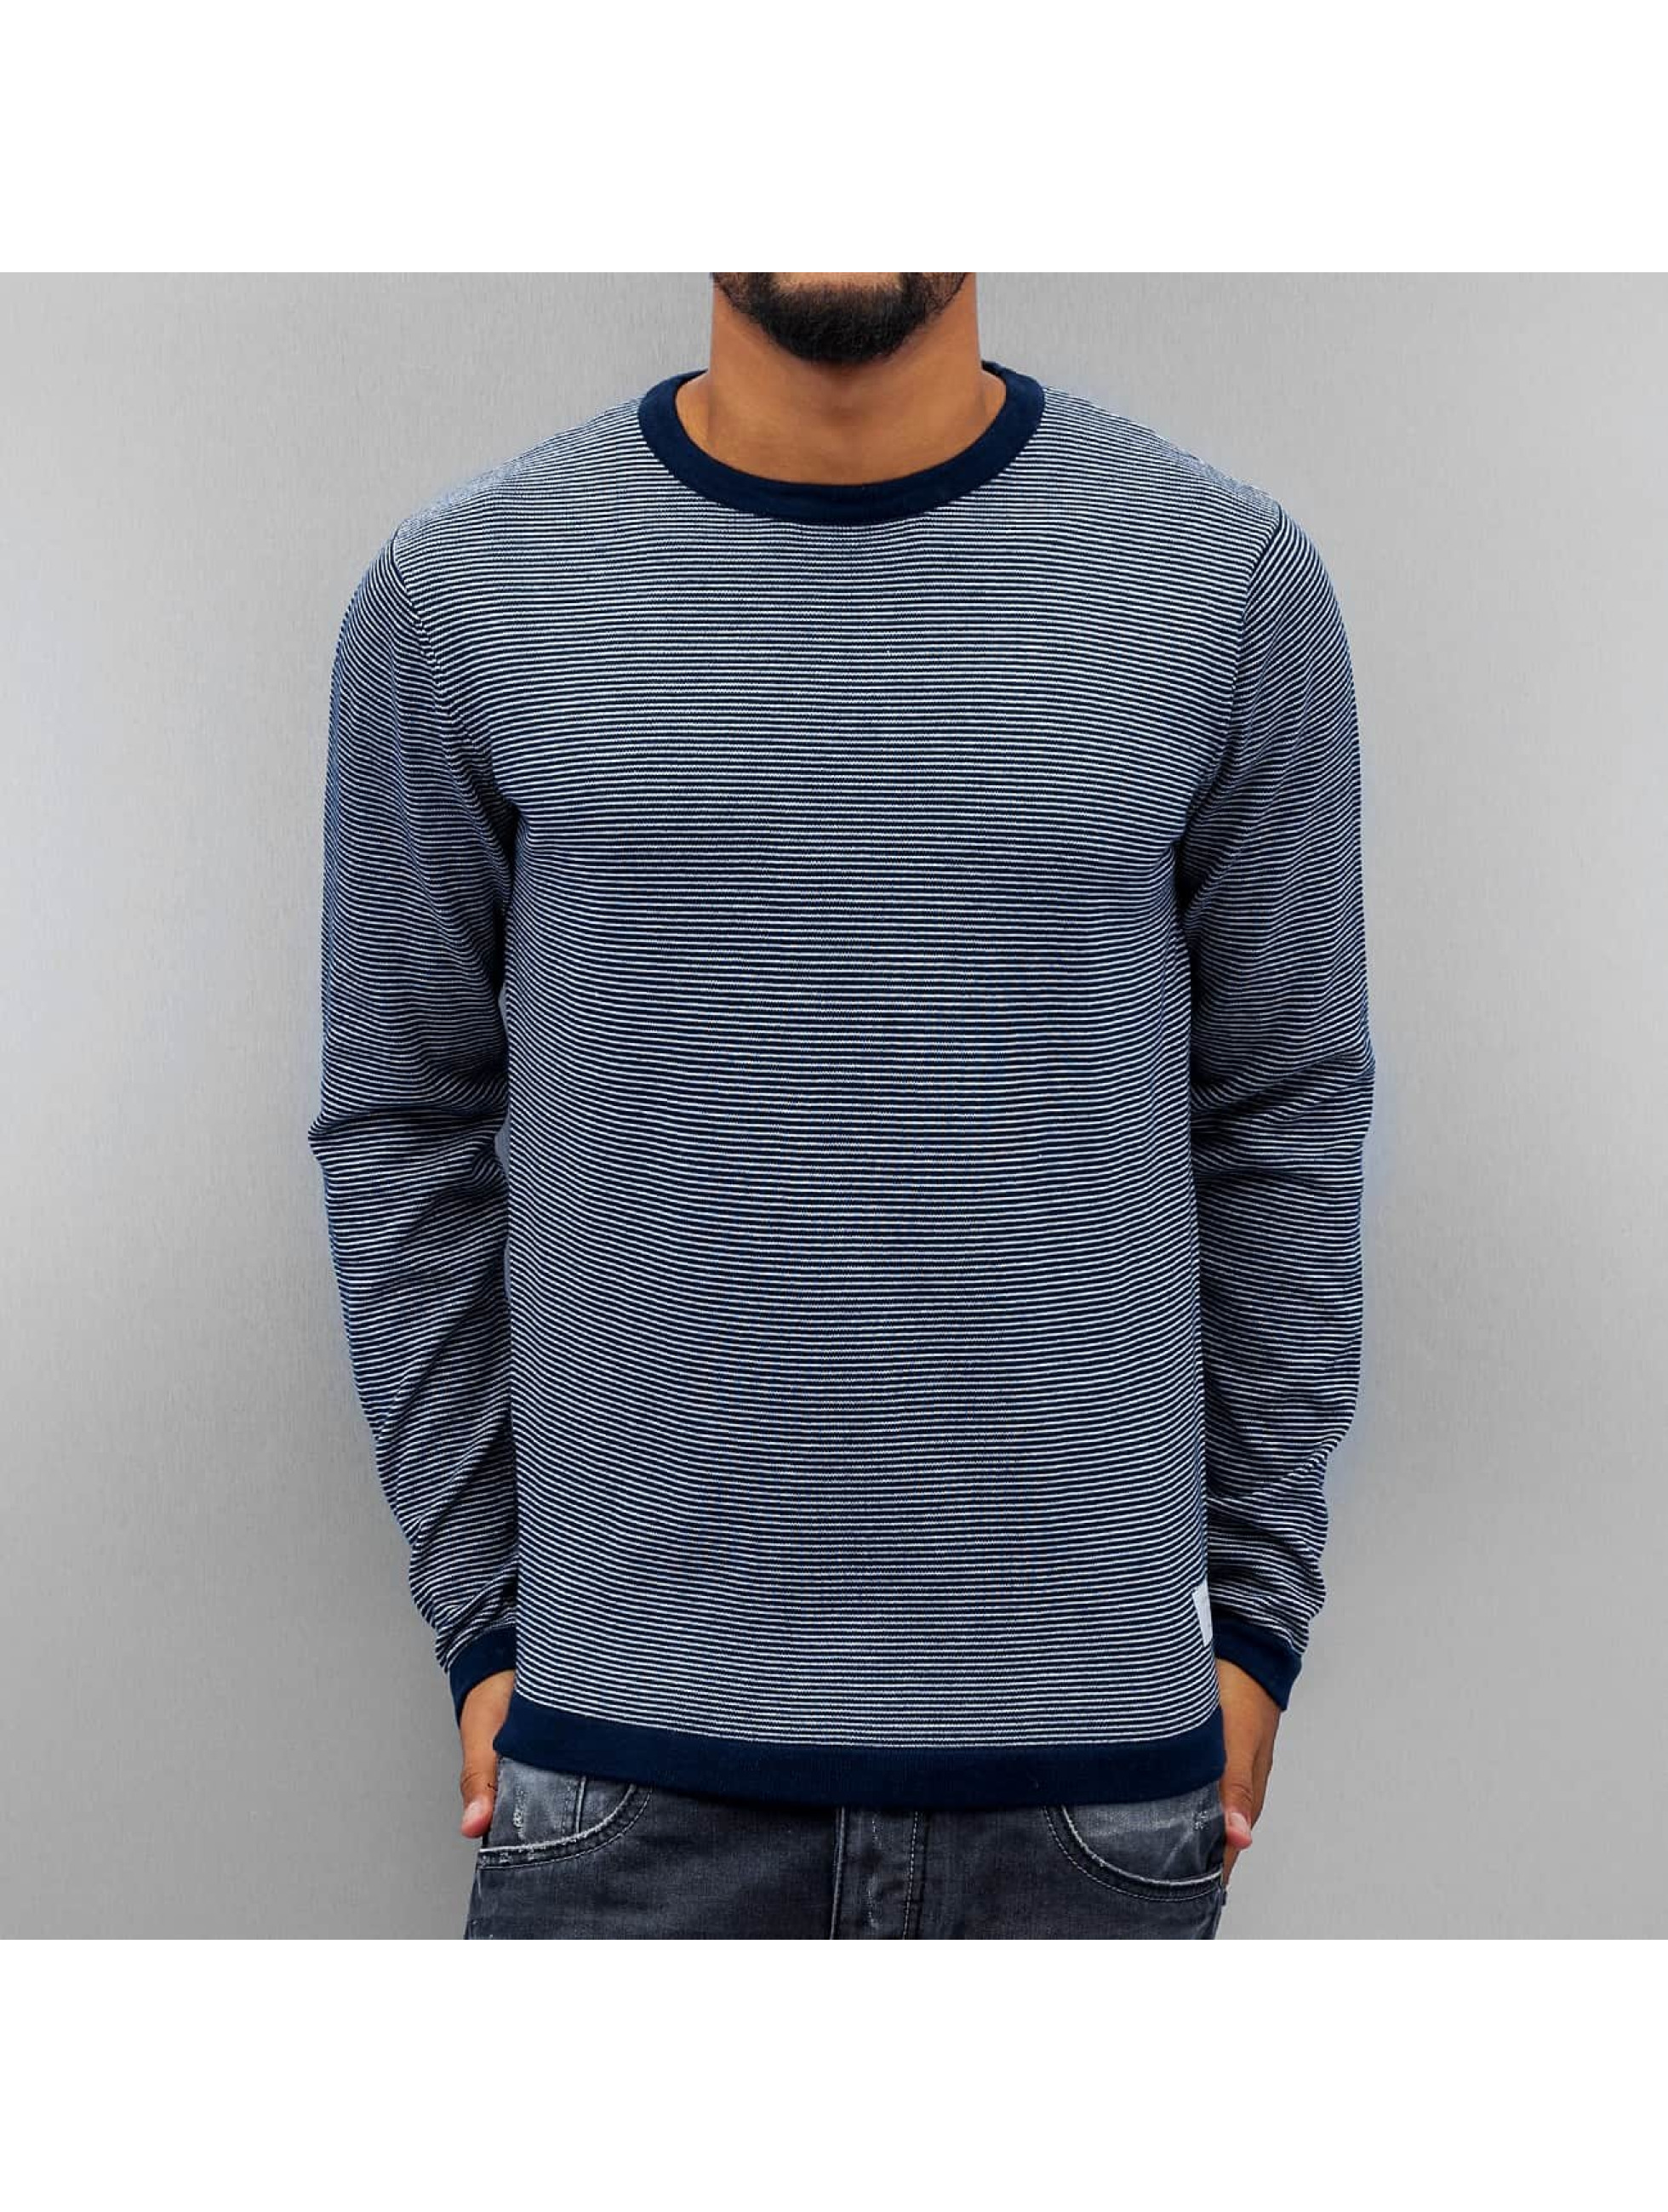 Jack & Jones Swetry jjcoChris Knit niebieski